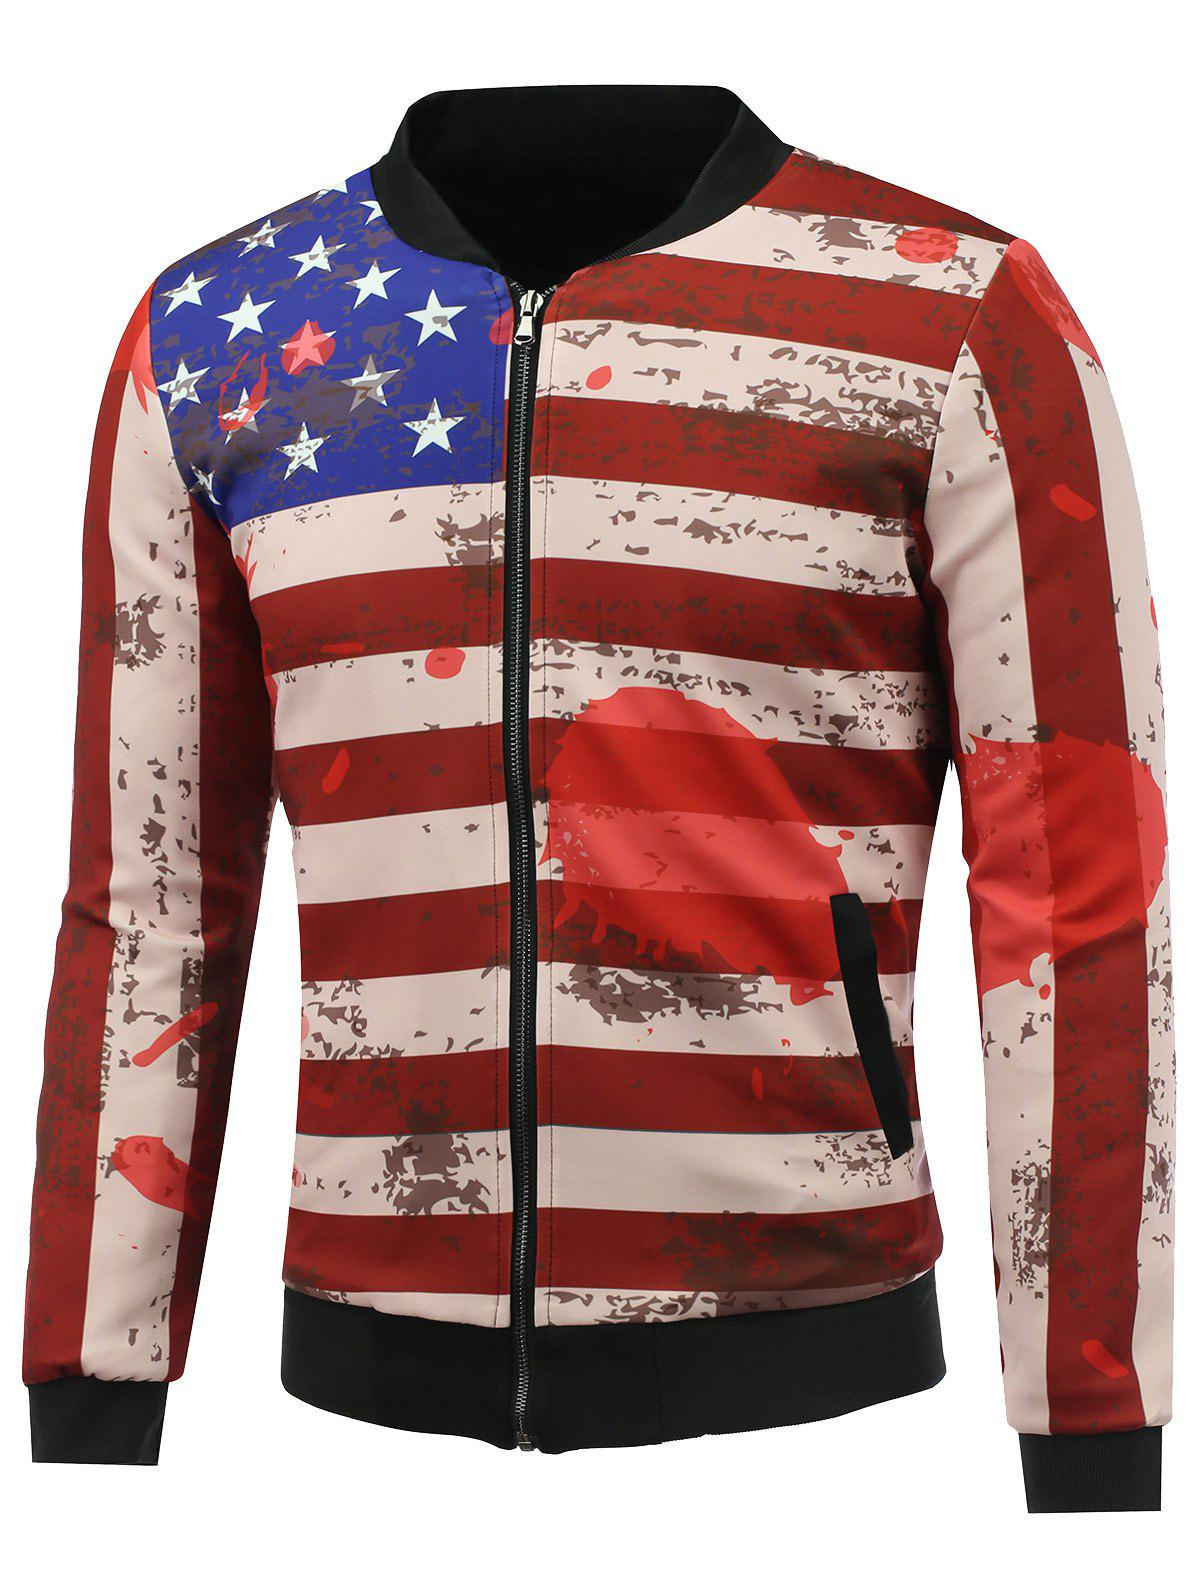 Splatter Paint Distressed American Flag Print Veste matelassée Multicolore 5XL